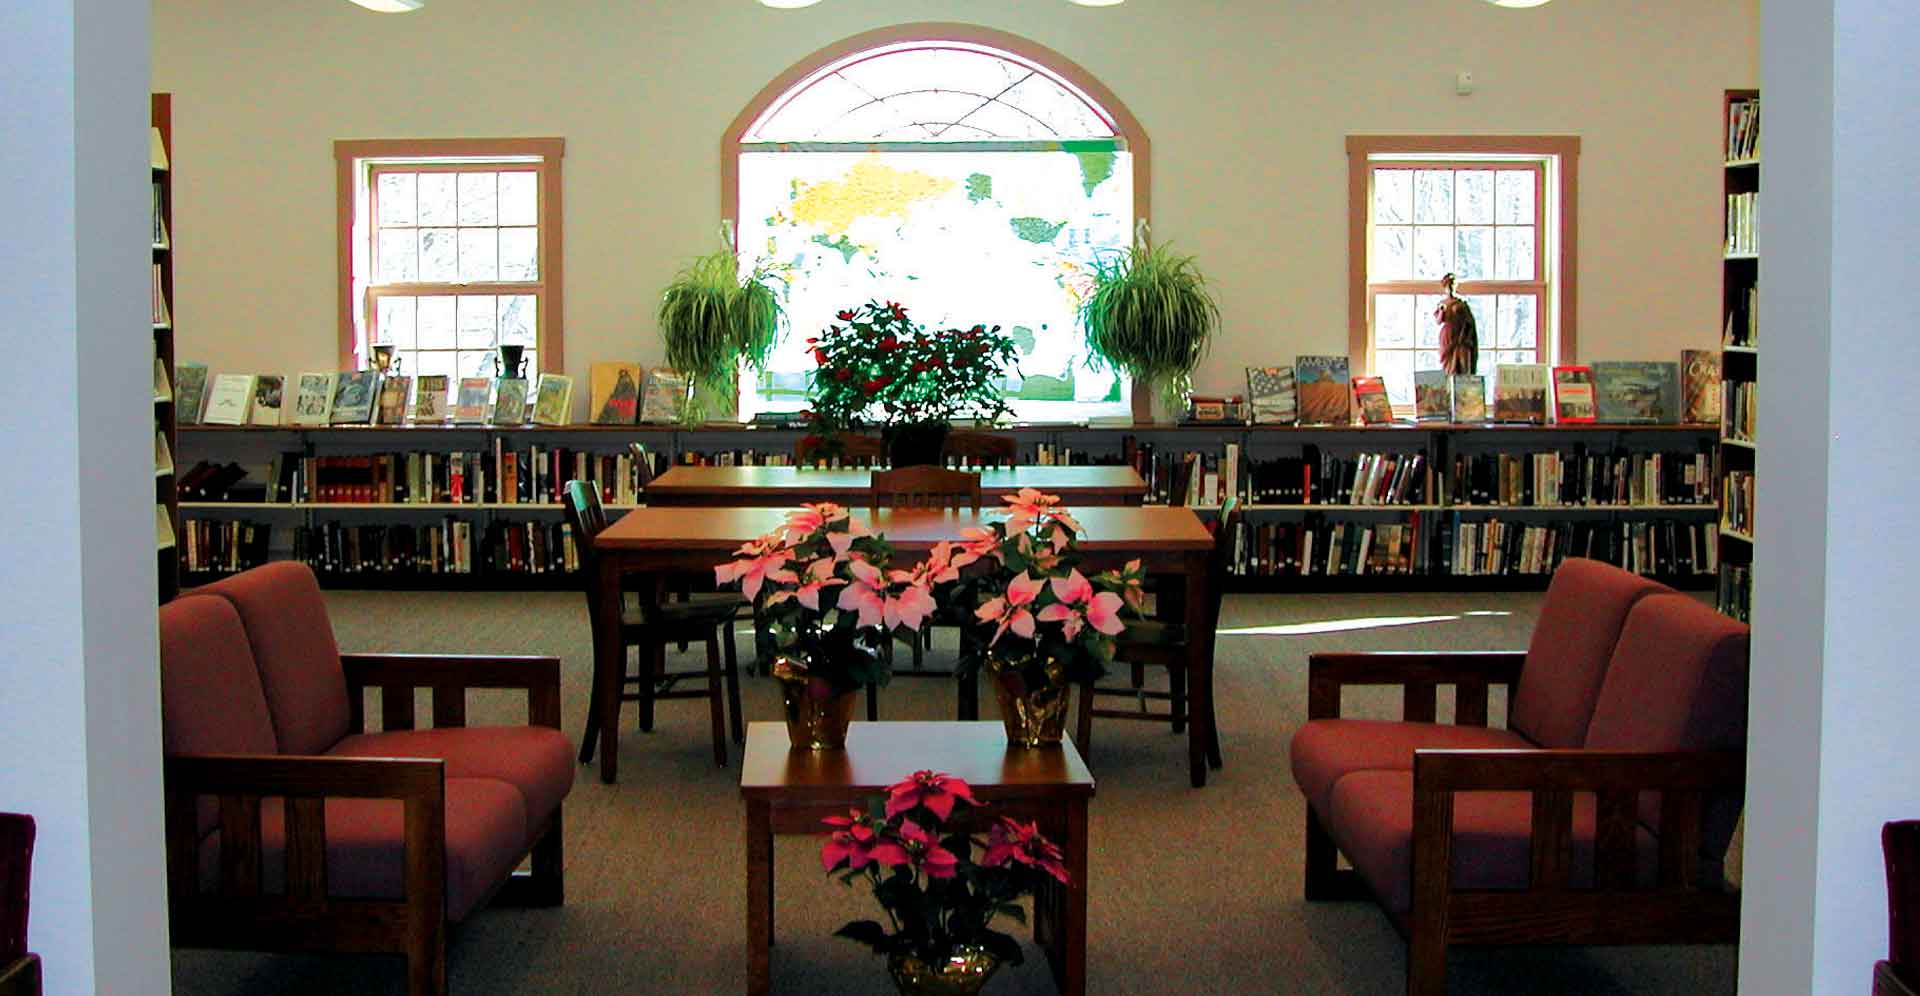 CHAPLIN-LIBRARY-AND-SENIOR-CENTER-LIBRARY1.jpg